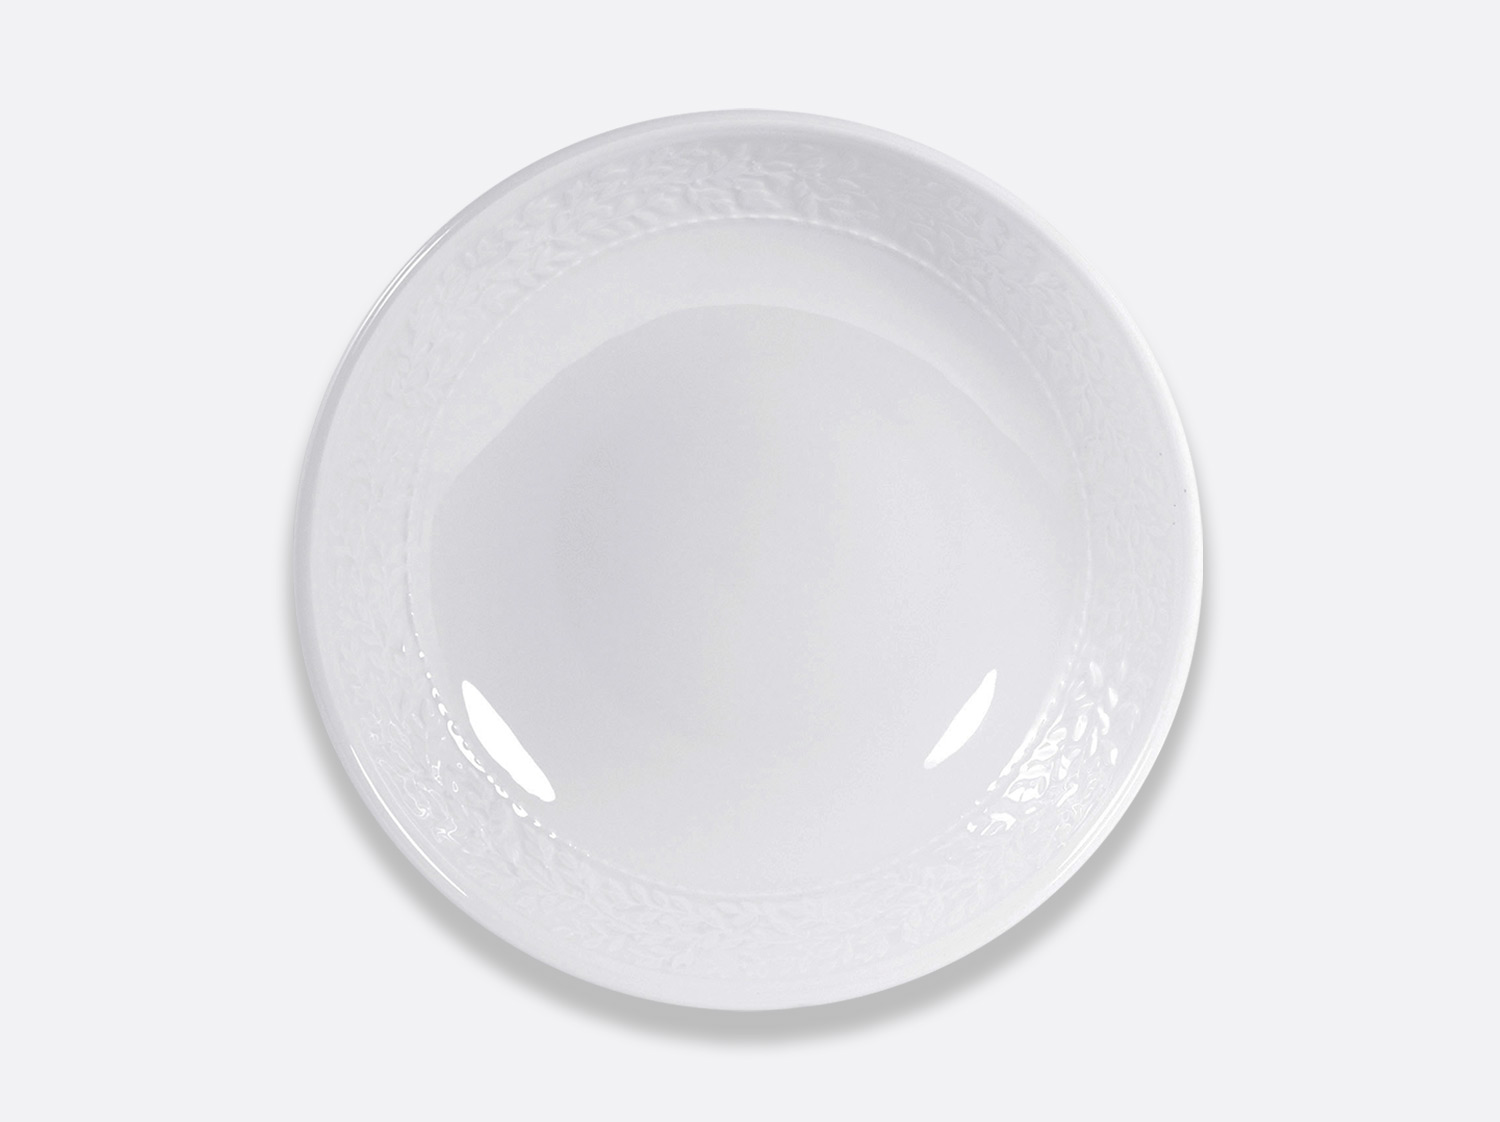 Plat à pates 34 cm en porcelaine de la collection Louvre Bernardaud